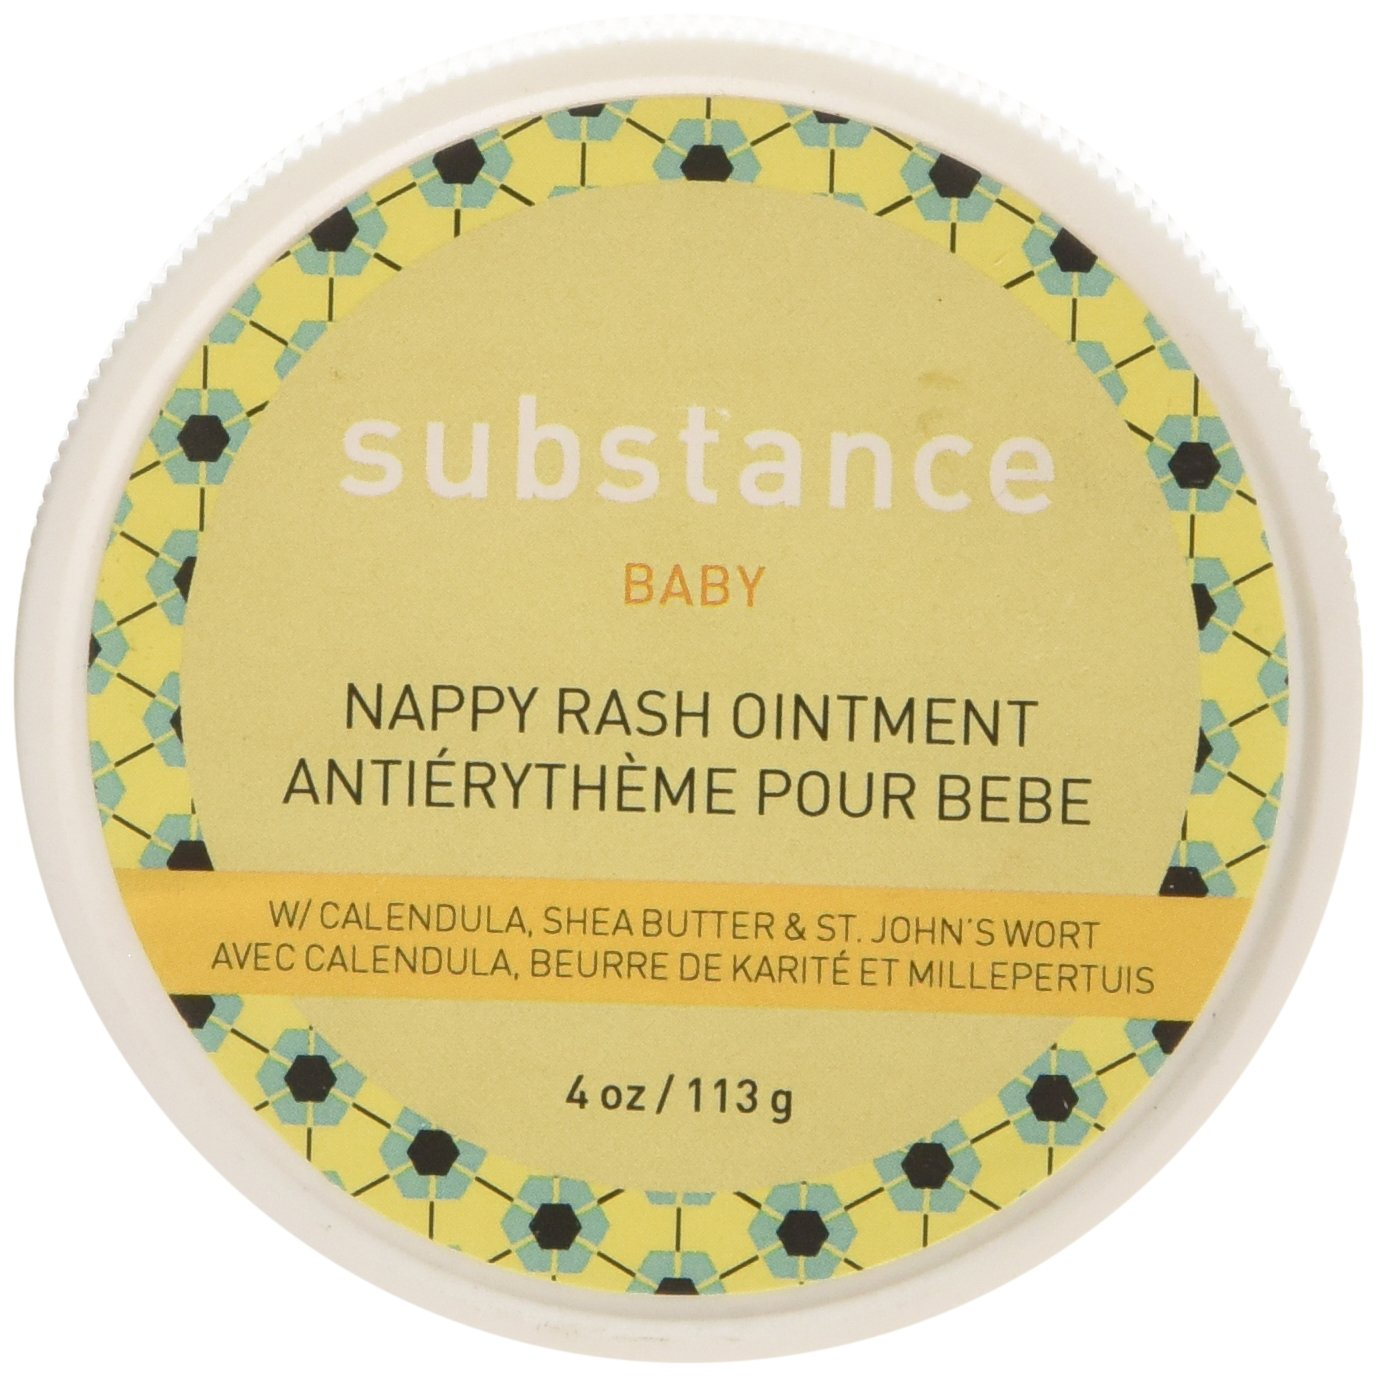 Substance Nappy Rash Ointment Matter Company b-301